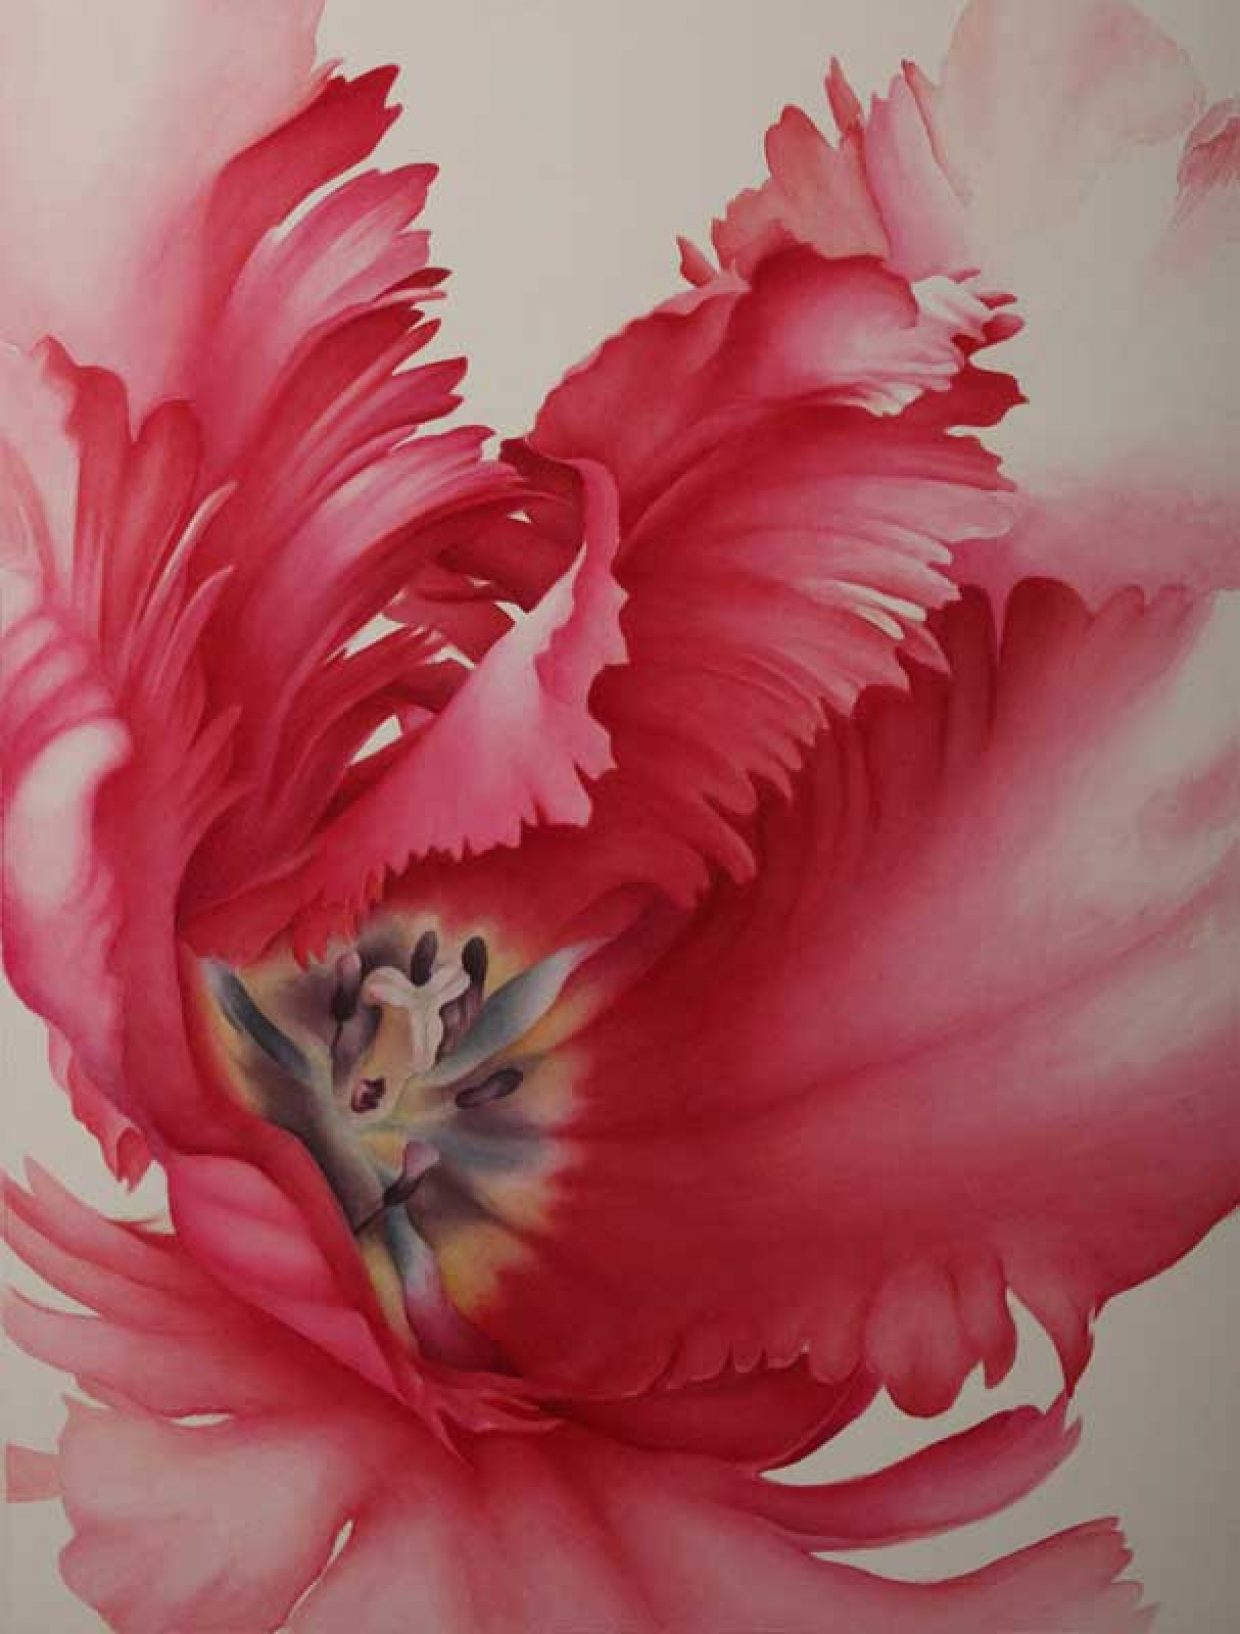 Raymond Brownell Prize, Name: Minako Watanabe, Title: tulip, Media: Water colour on paper